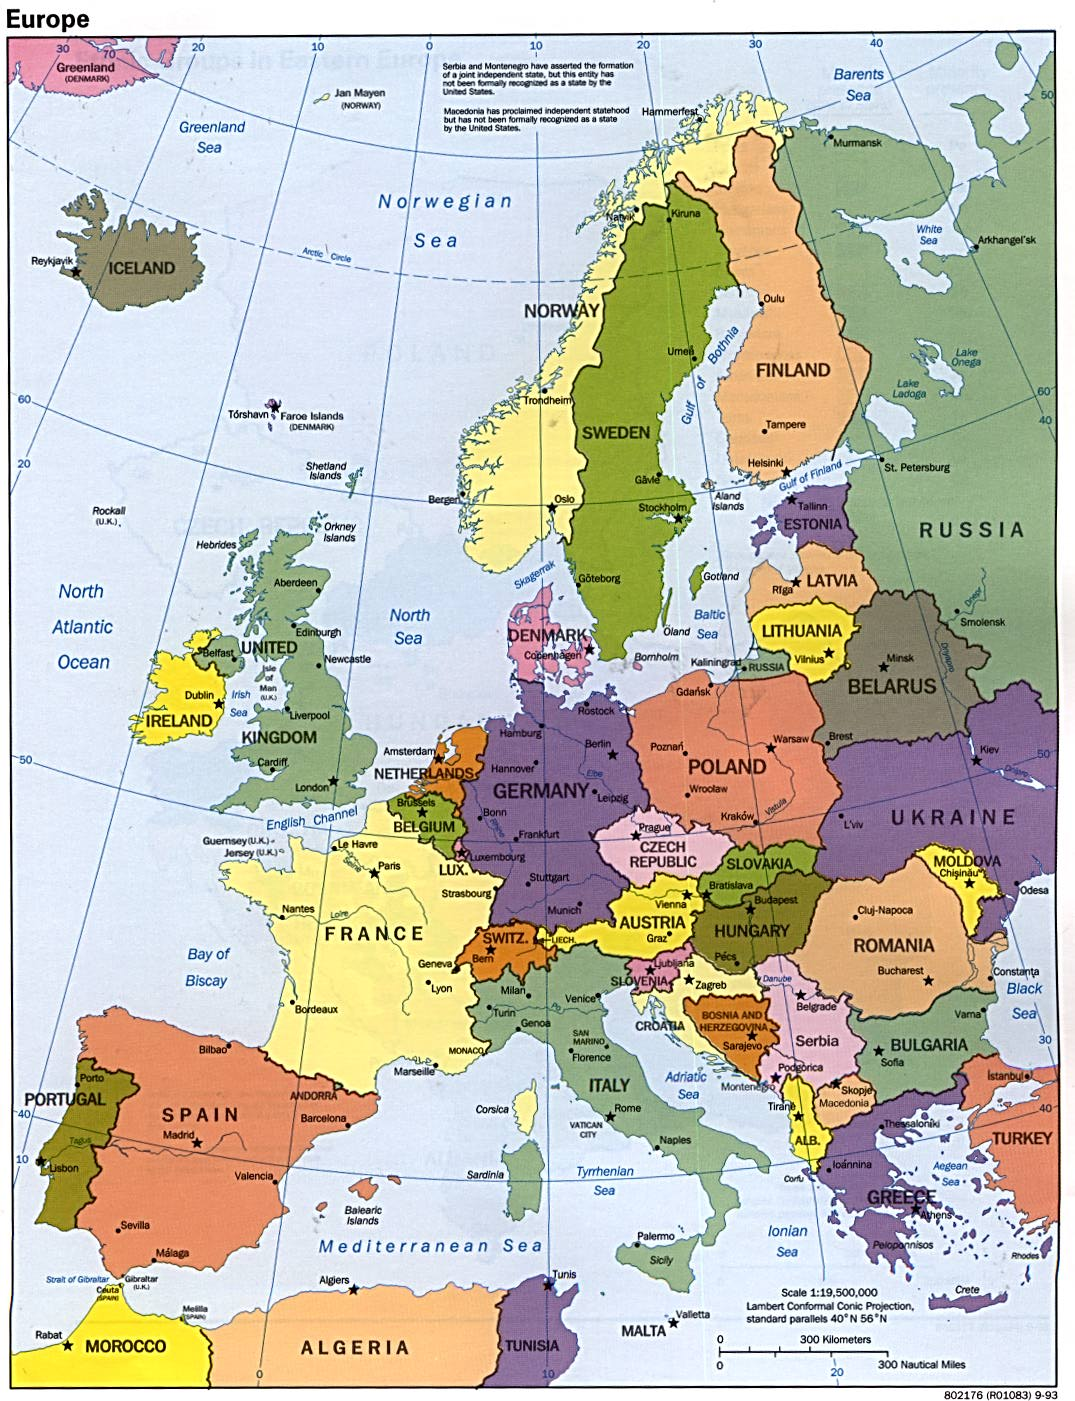 Maps of Europe | Map of Europe in English | Political ... Schengen Country Map on france country map, new zealand country map, israel country map, spain country map, schengen information system, iceland country map, eea family permit, ireland country map, passport stamp, russia country map, australia country map, eu country map, italy country map, canada country map, belgium country map, austria country map, border control, portugal country map, schengen agreement, europe country map, romania country map, usa country map, singapore country map, thailand country map, czech republic country map,